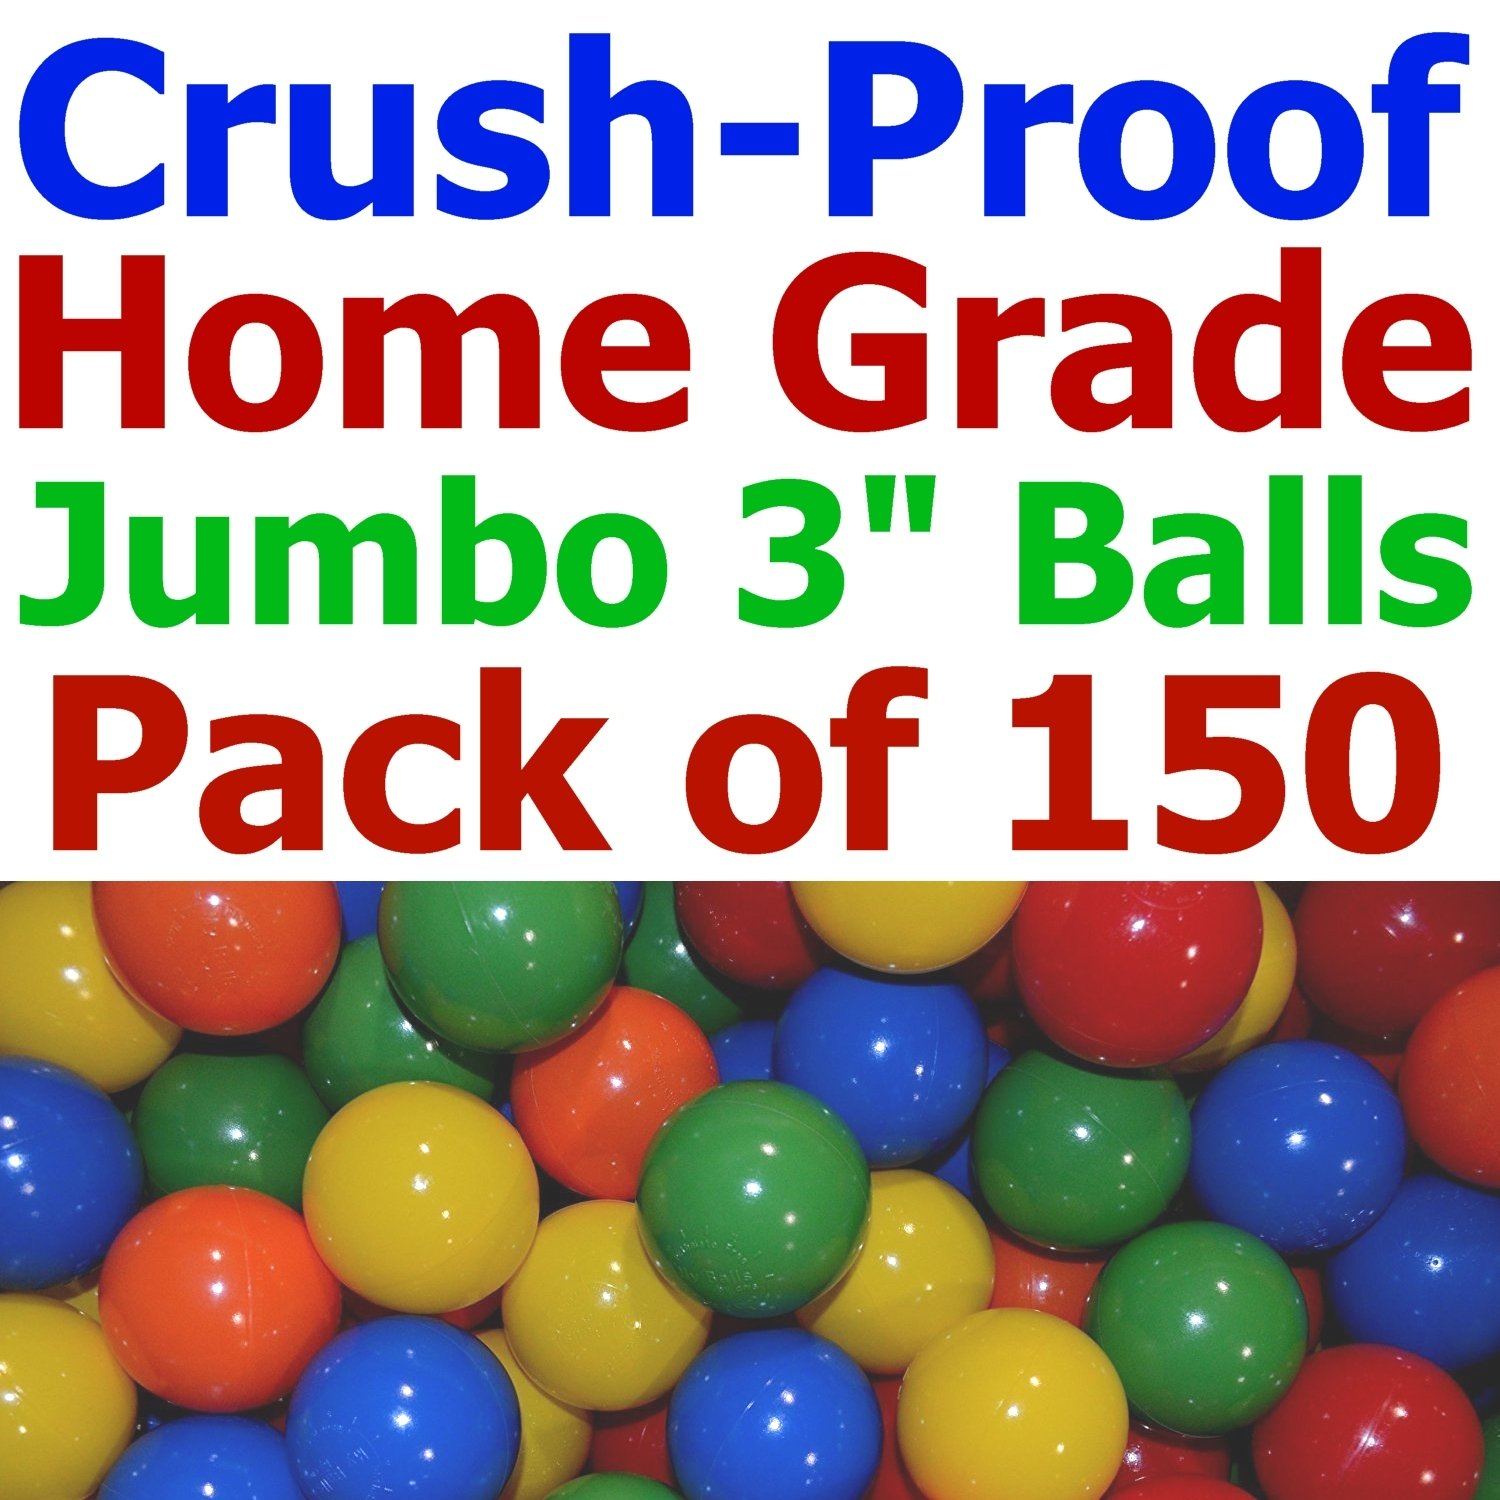 2.5X the Size - My Balls Pack of 150 pcs 3'' Jumbo Size Crush Proof Balls - Phthalate & BPA Free, Perfect amount for a Pack 'n Play ( as compared with Click N' Play Ball )